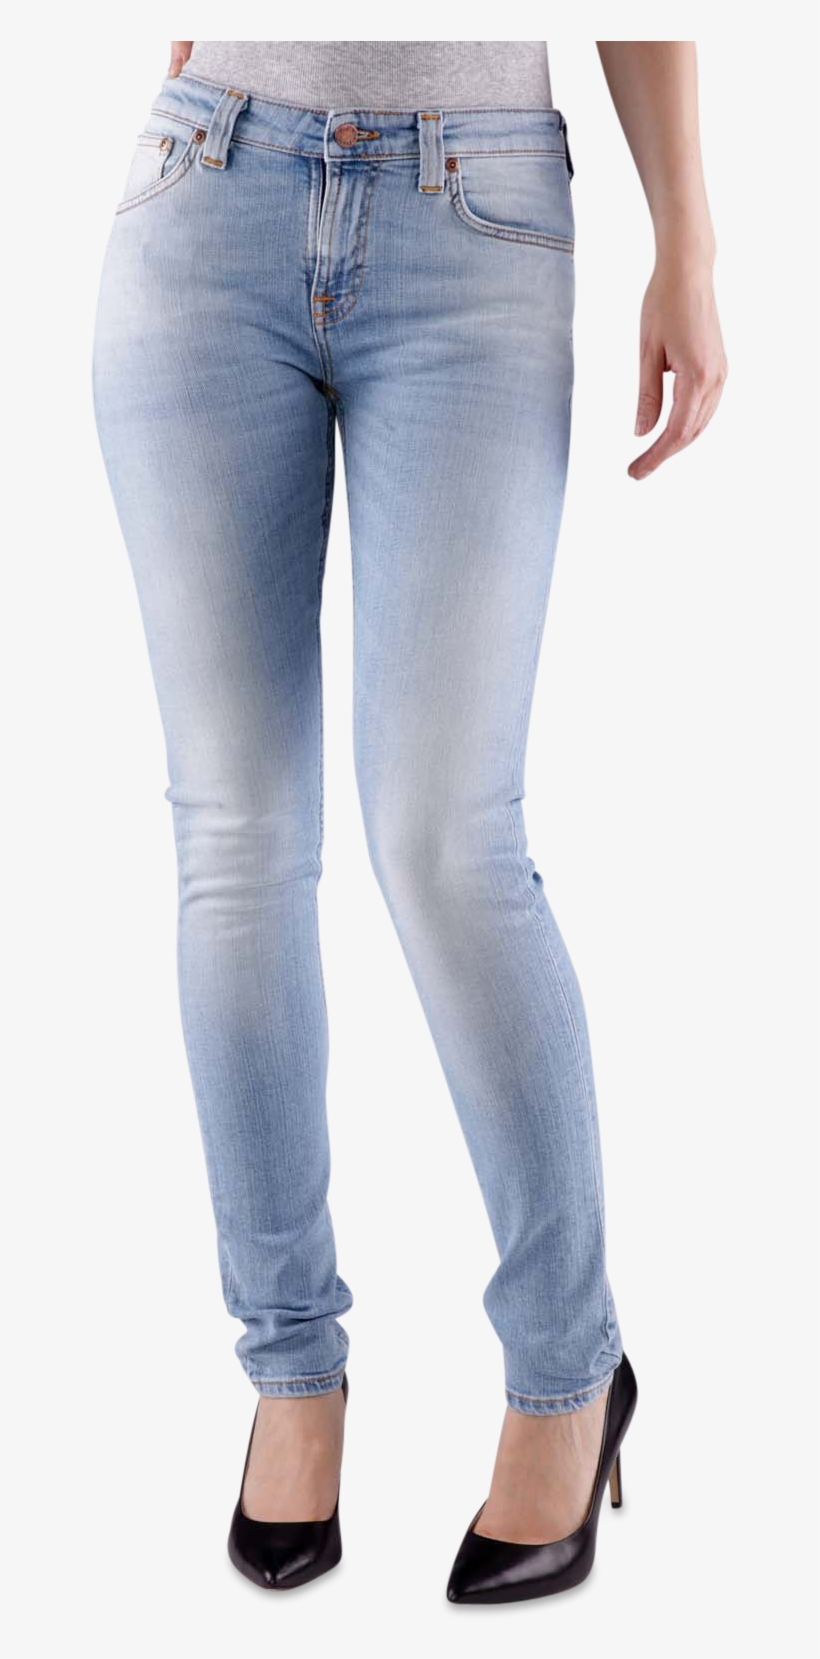 Womens Jeans Png , (+) Png Group.